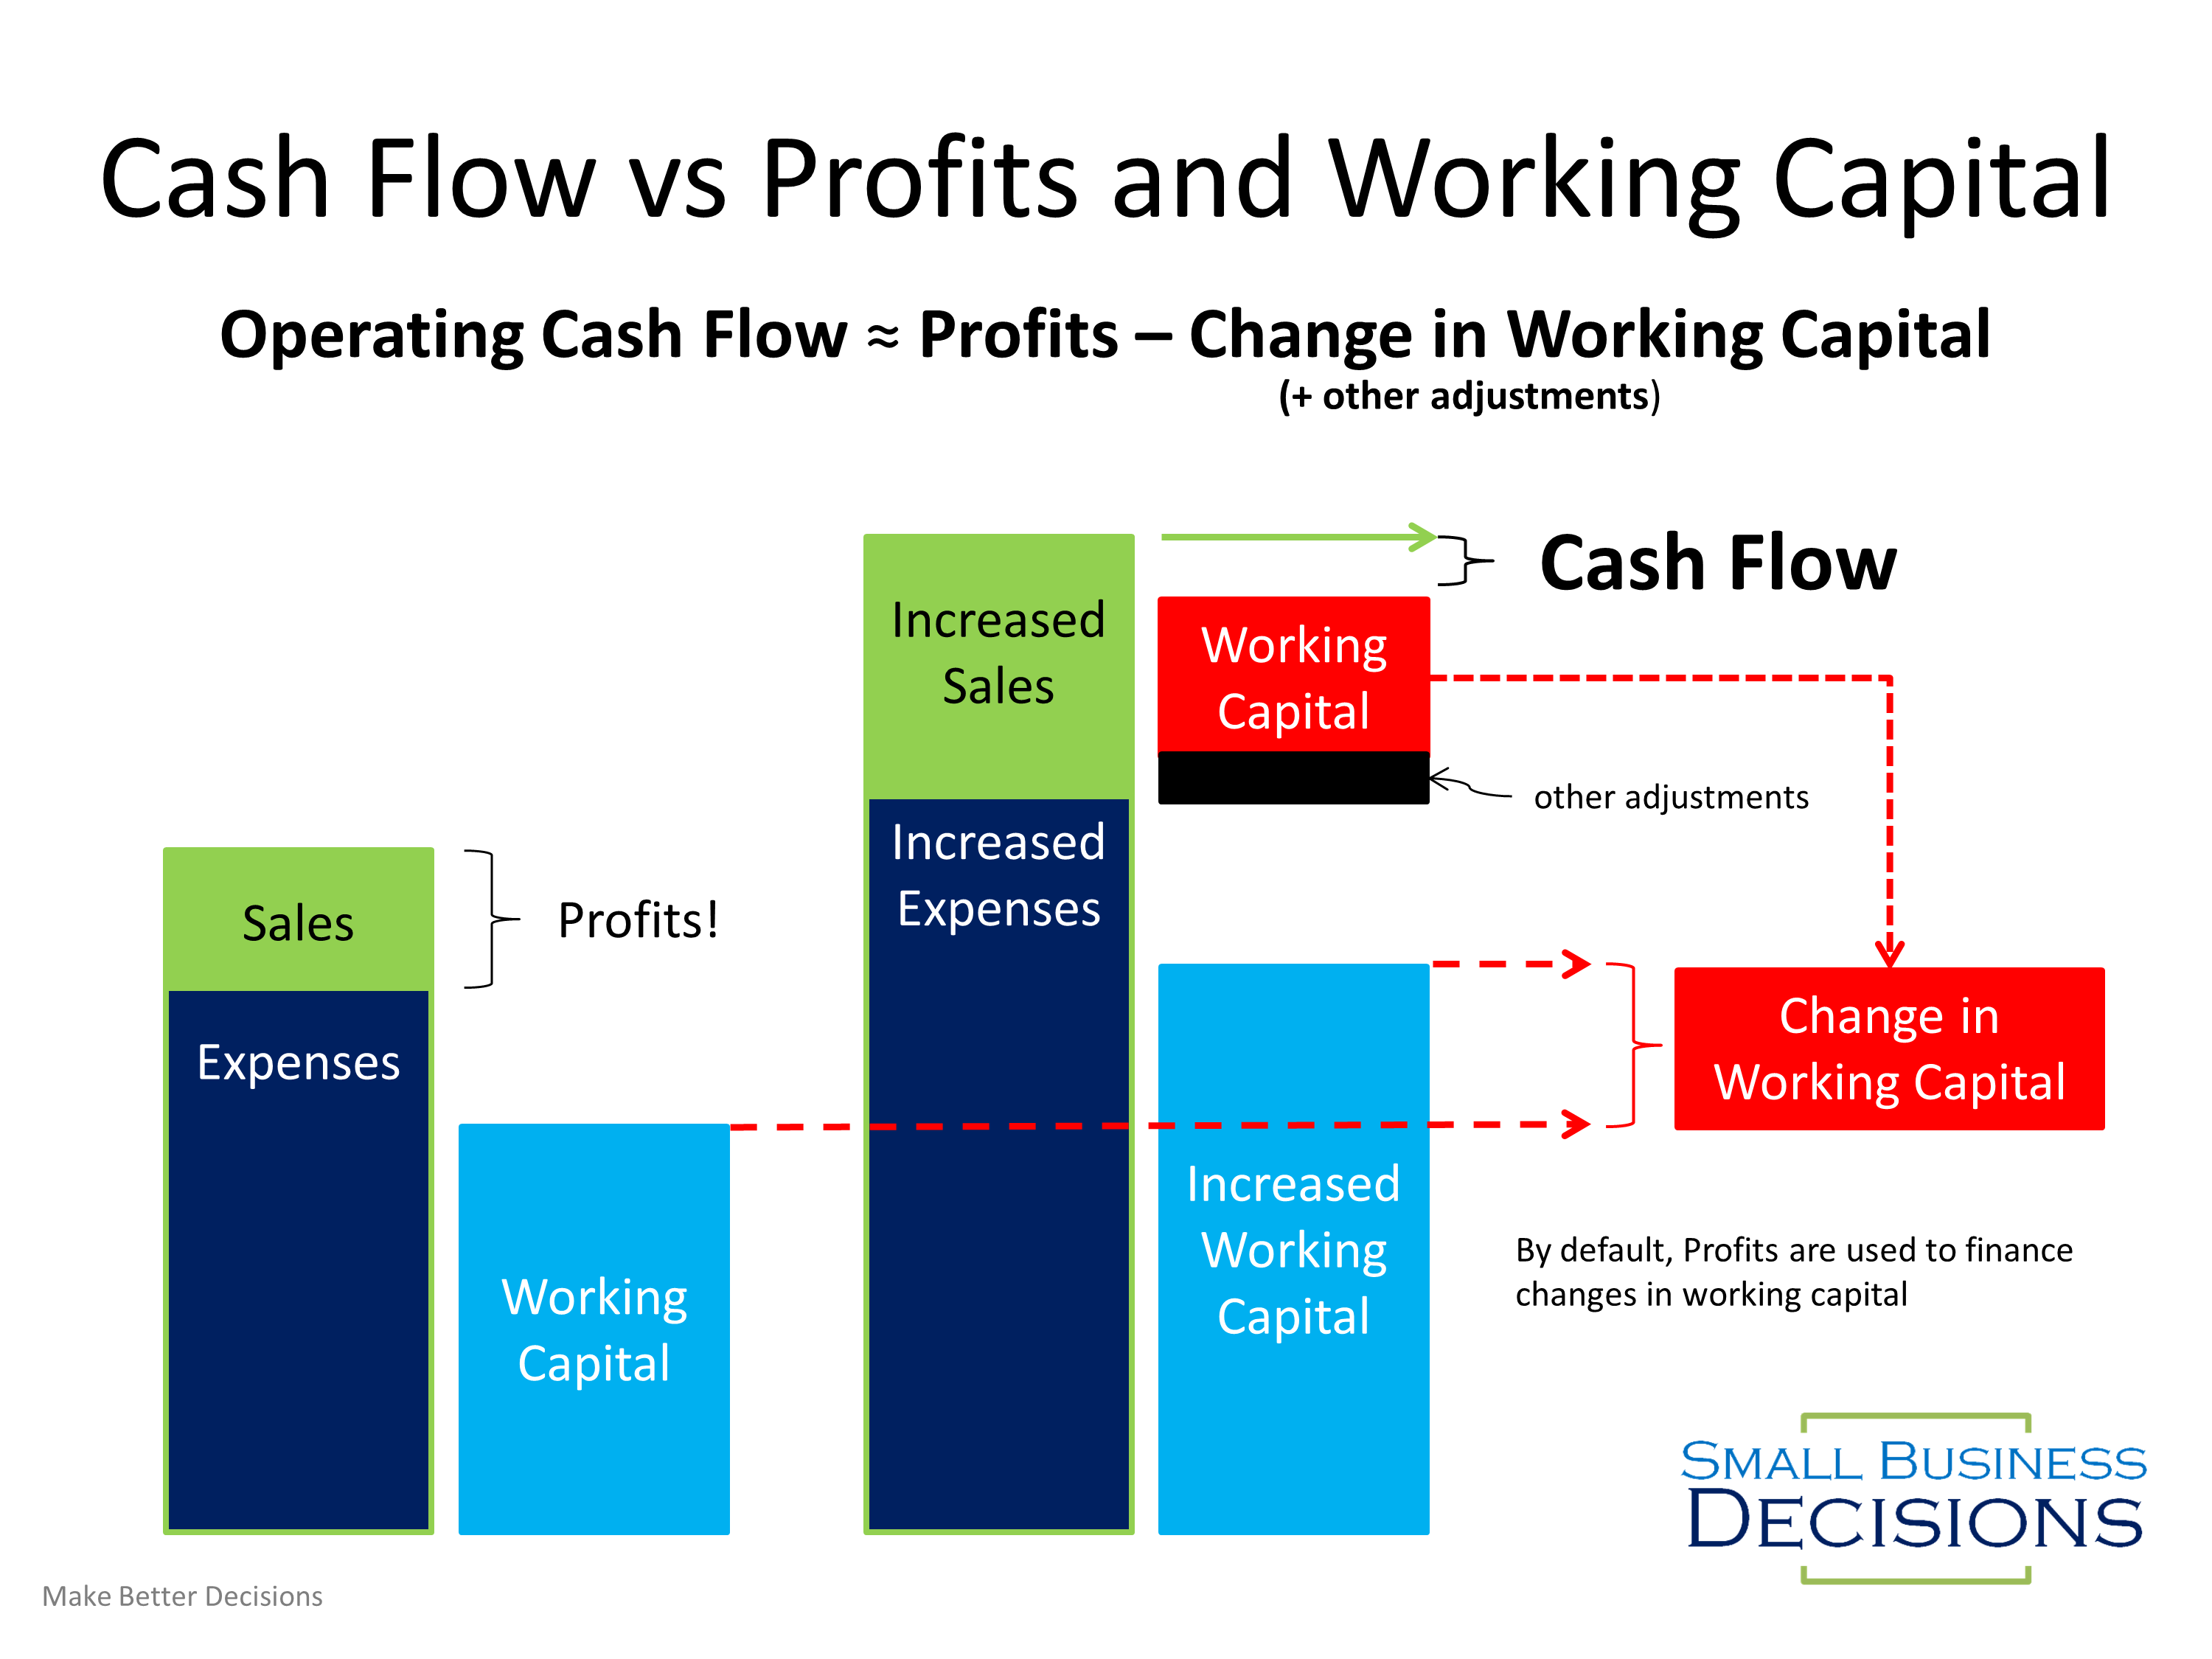 Operating Cash Flow ≈ Profits – Change in Working Capital + other Adjustments